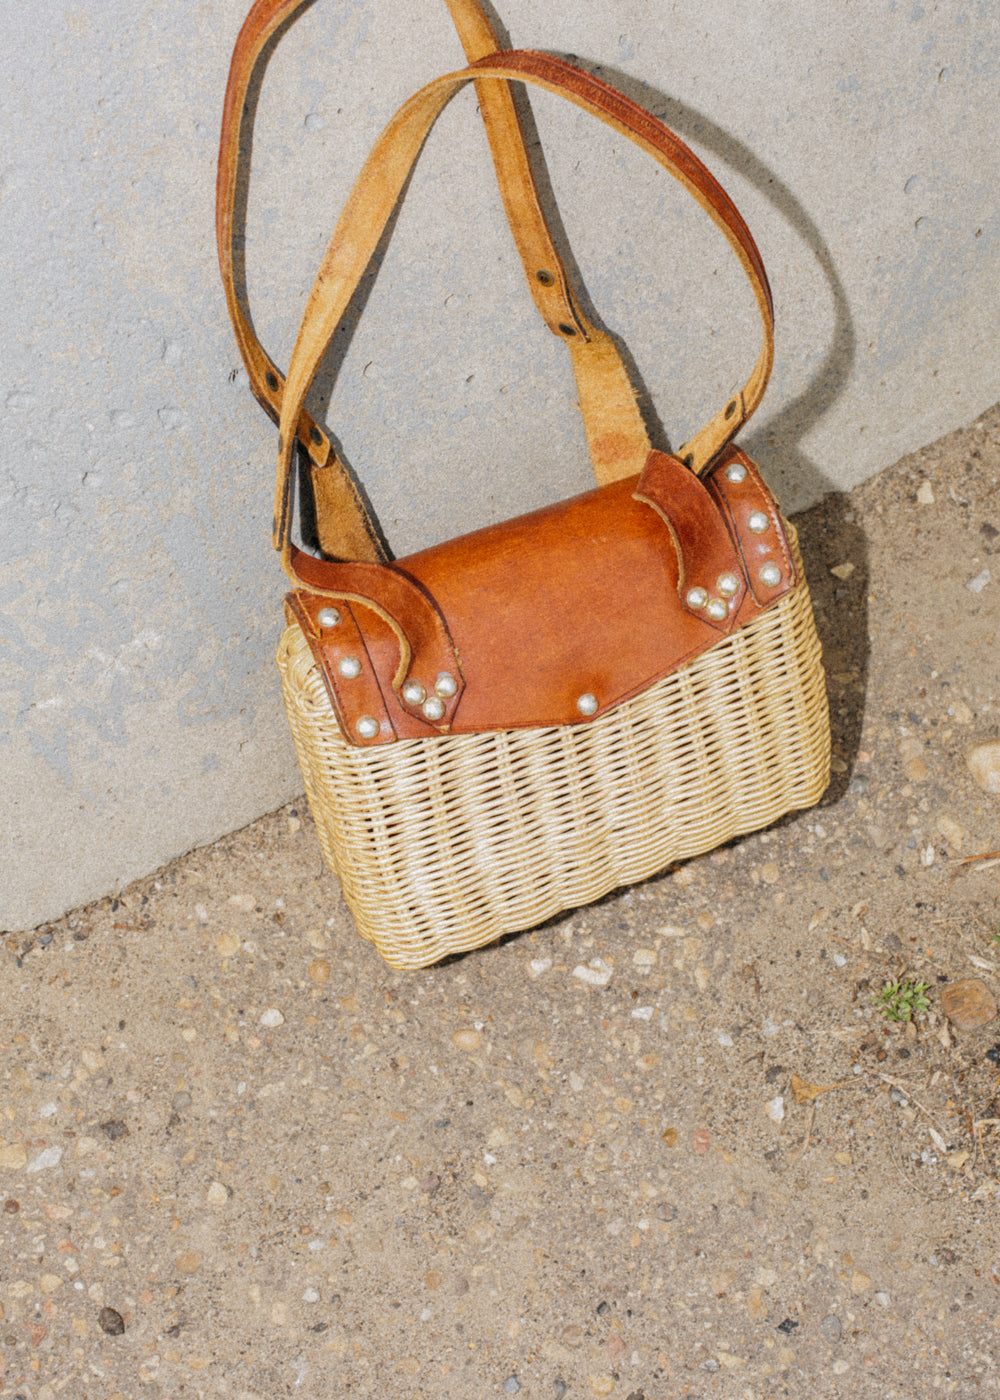 Pre by New Classics Vintage Basket Bag — Shop sustainable fashion and slow fashion at New Classics Studios